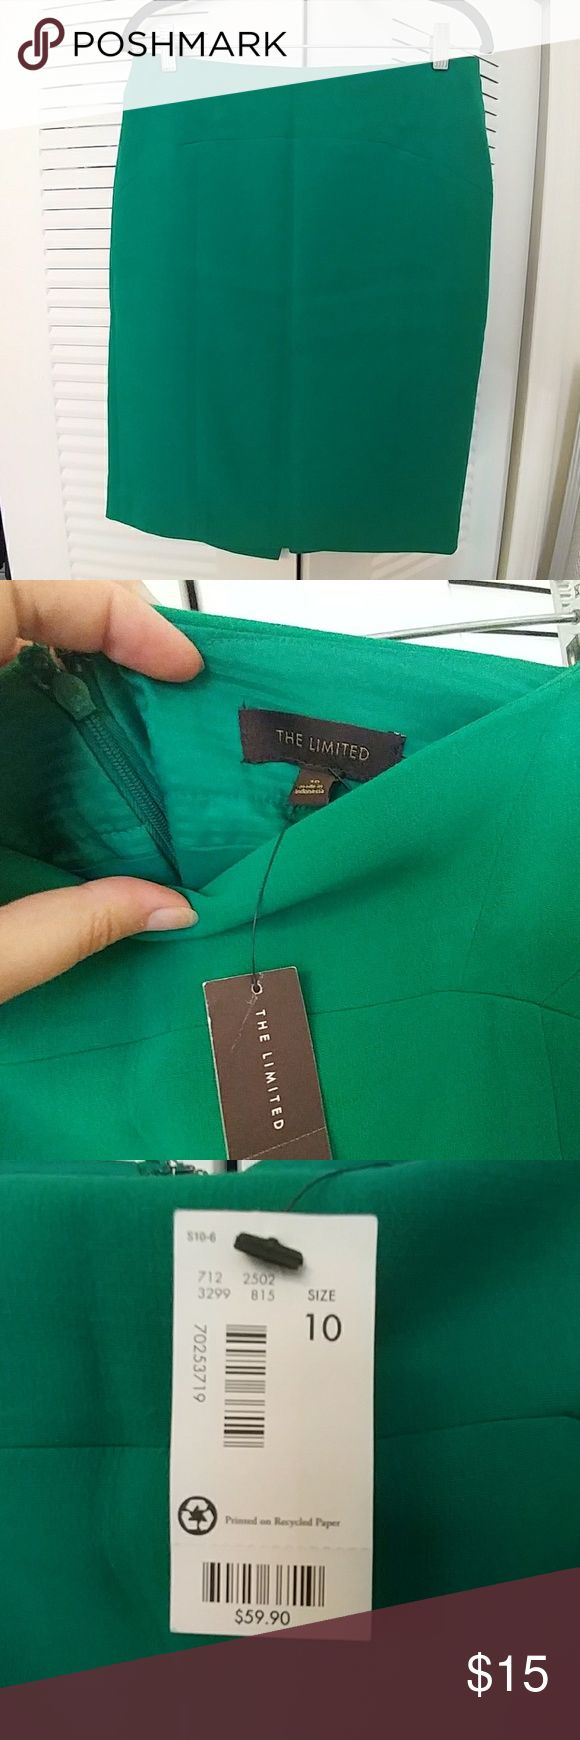 Emerald Green Pencil Skirt Brand new with tags, emerald green pencil skirt. Cute for work or whatever. The Limited Skirts Pencil